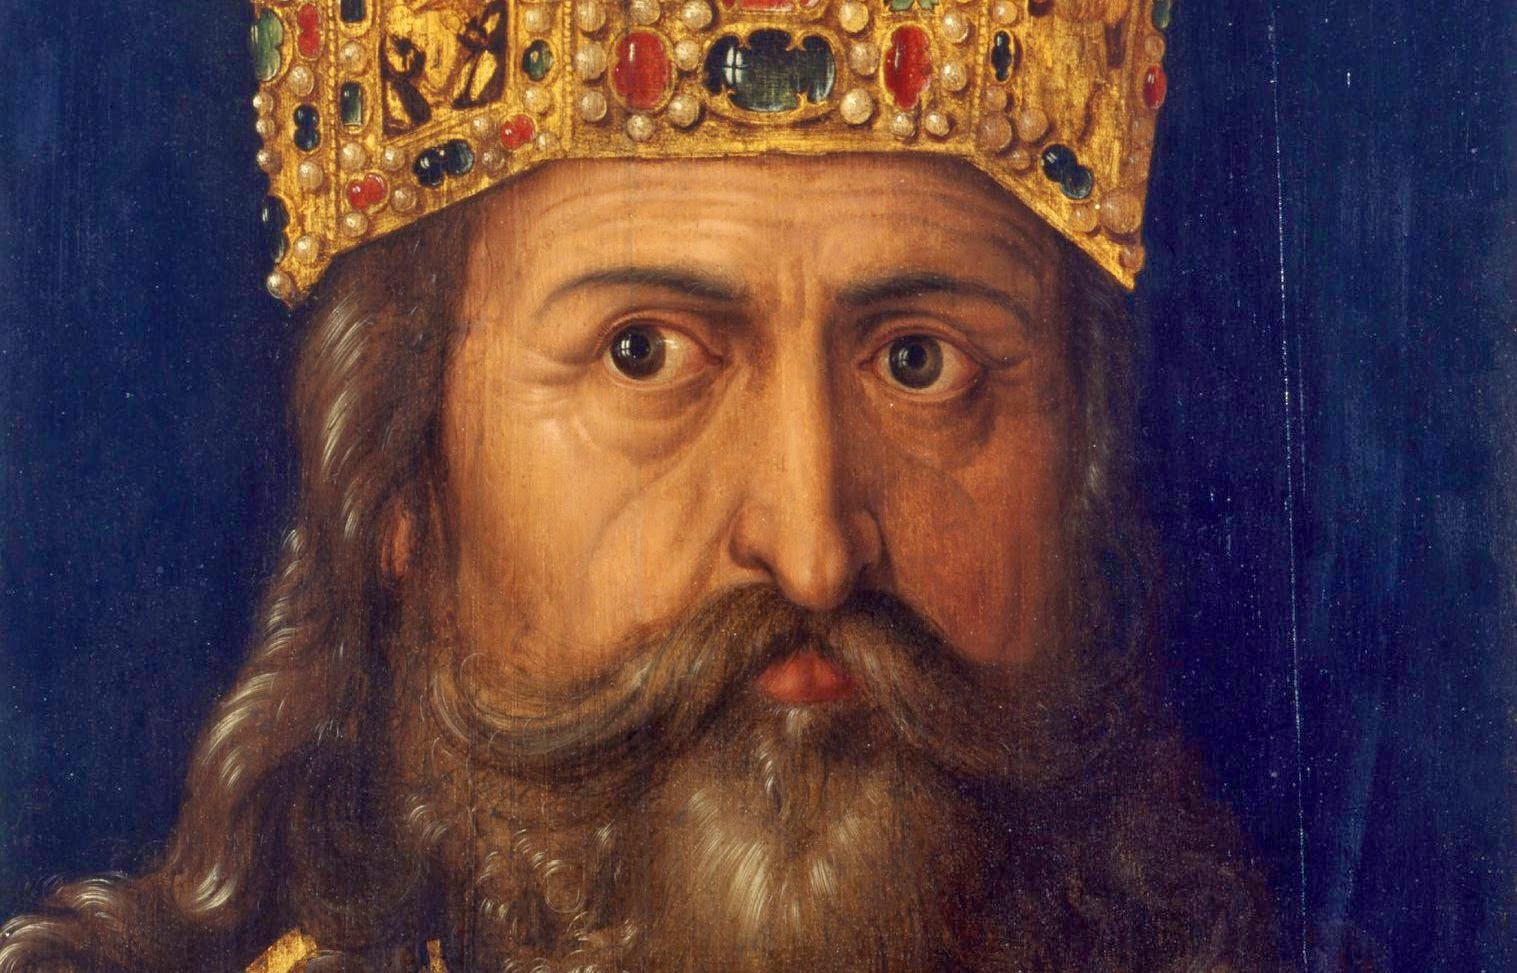 Charlemagne | 10 Facts On The Great Holy Roman Emperor